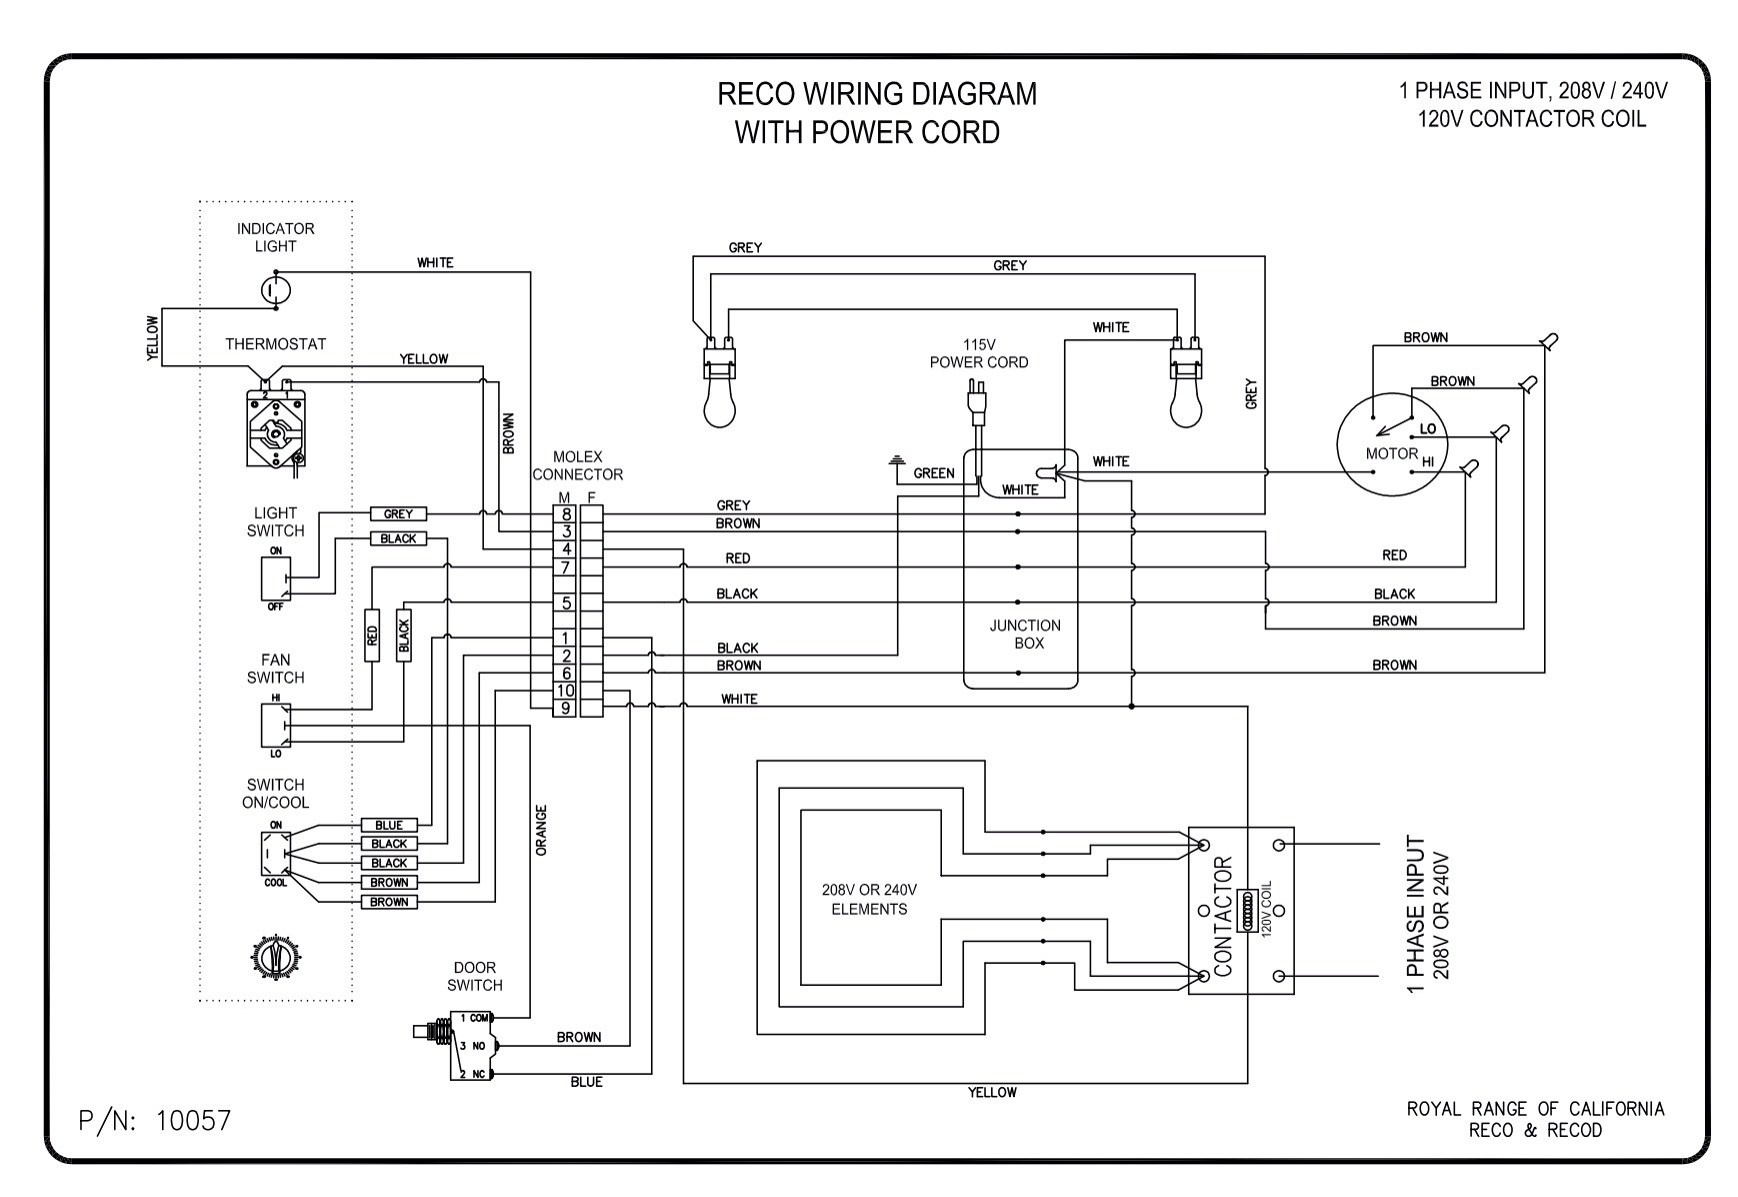 electrical wiring diagram of rice cooker relay 4 pole diagrams royal range california